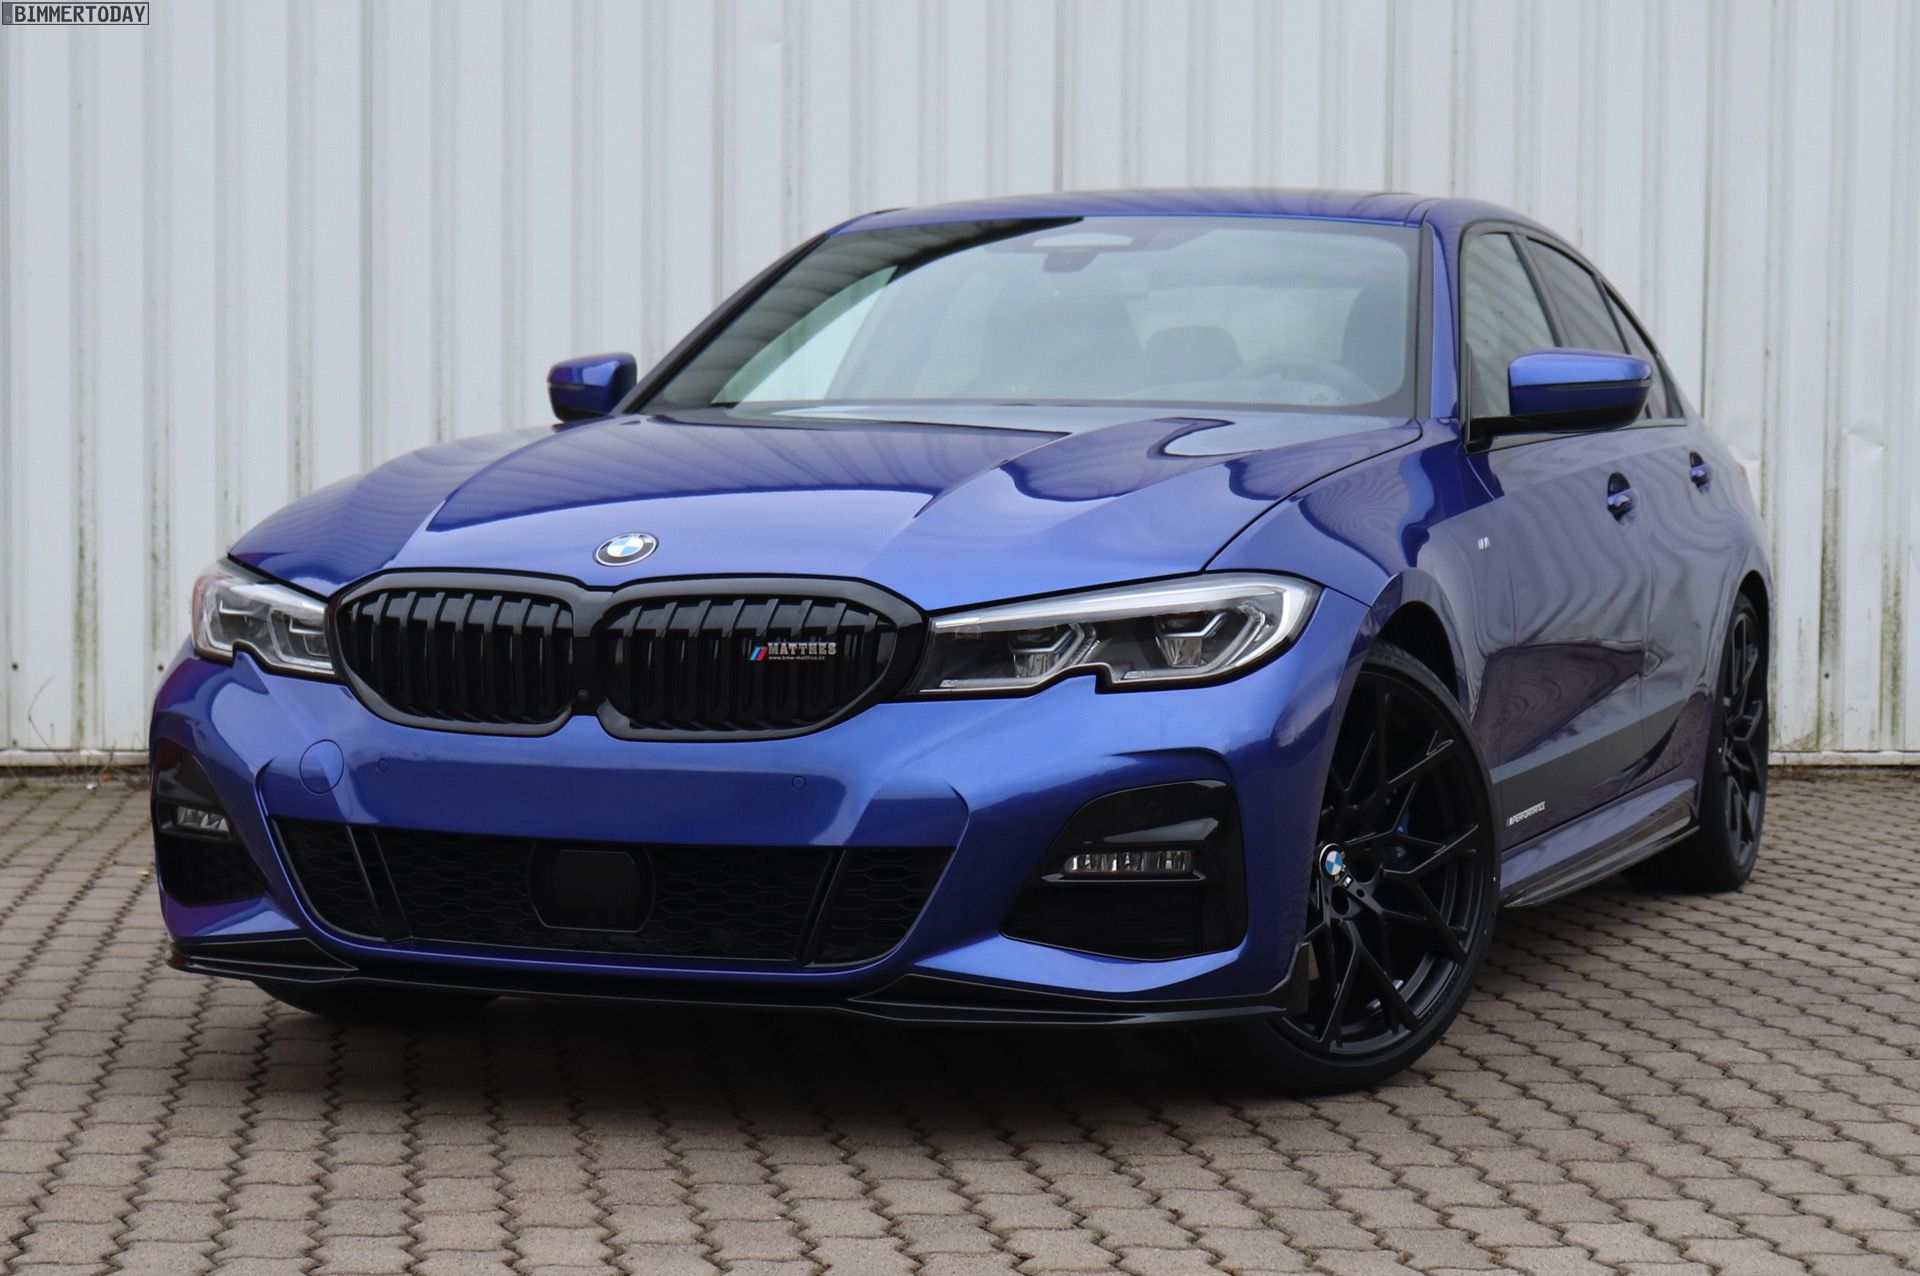 Bmw 330i In Portimao Blue Gets Some M Performance Upgrades Bmw Bmw Accessories Bmw Touring